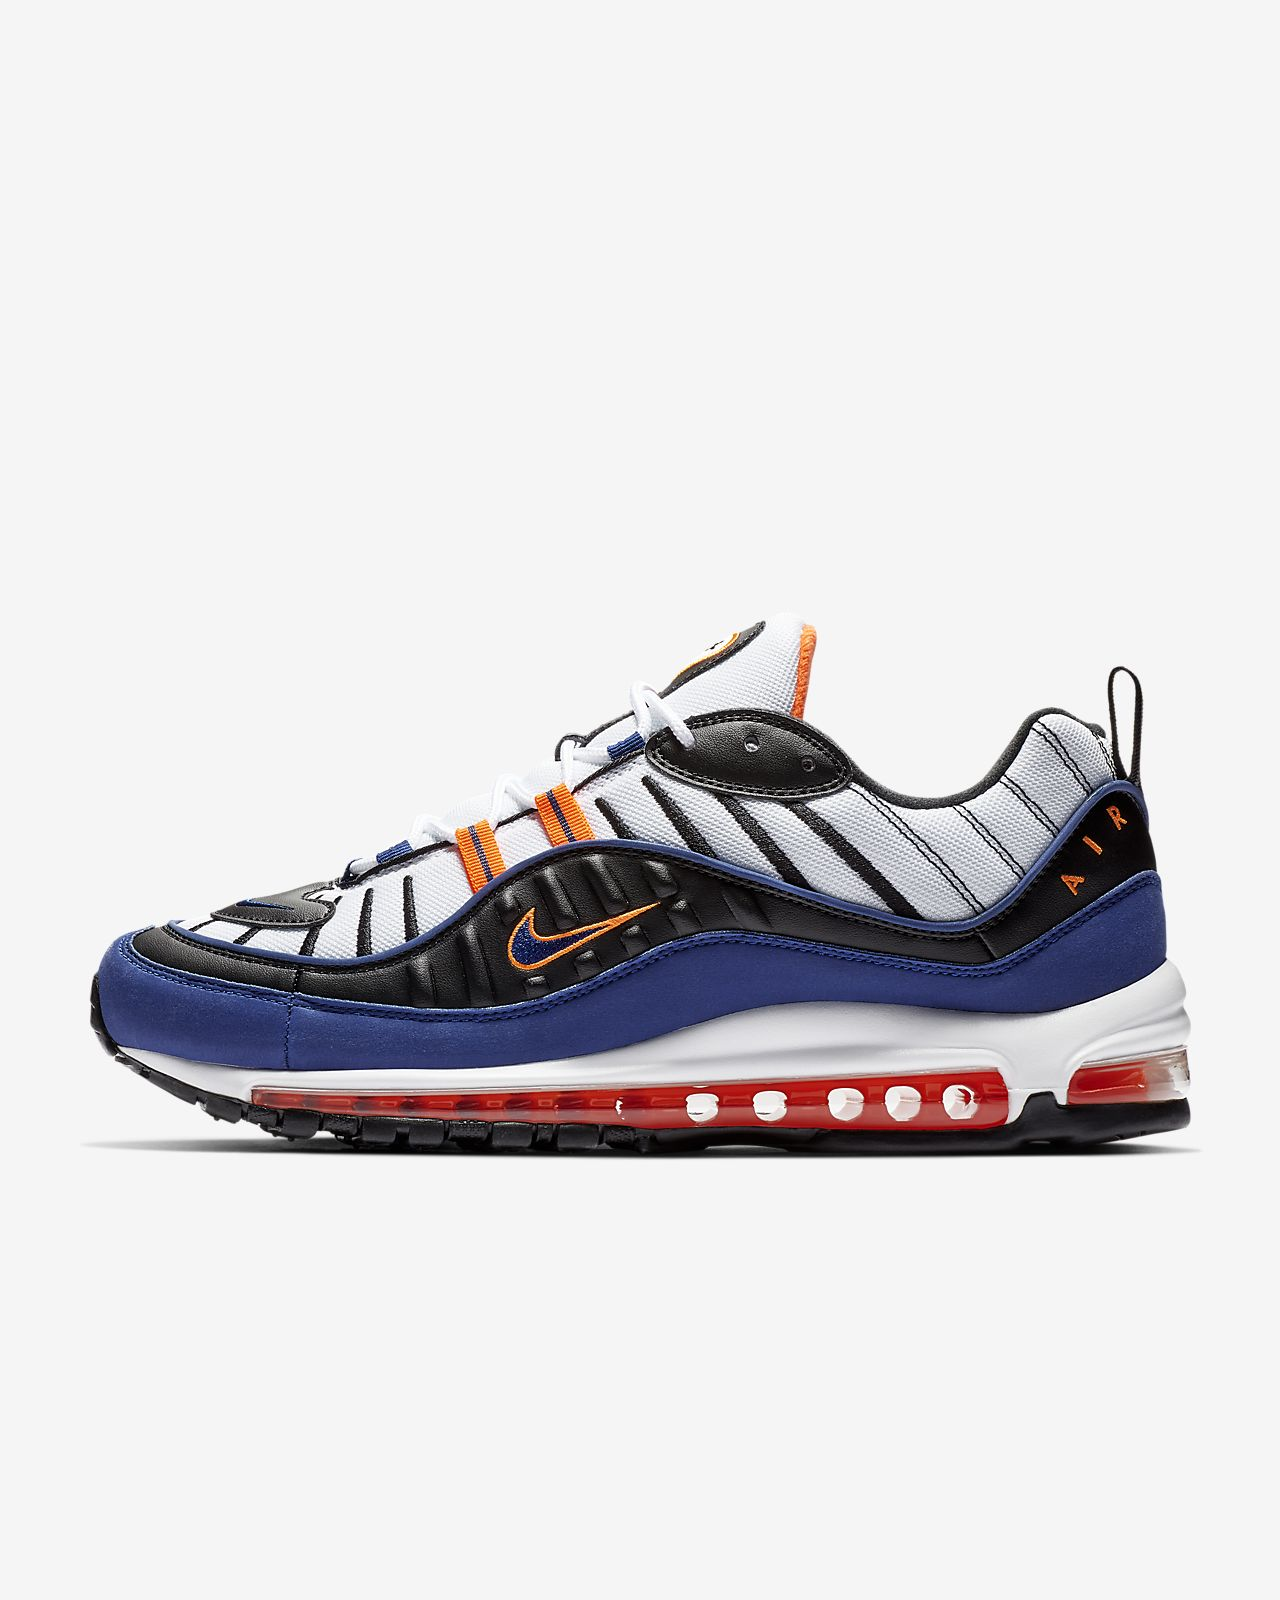 reputable site 0f661 d112c ... Chaussure Nike Air Max 98 pour Homme